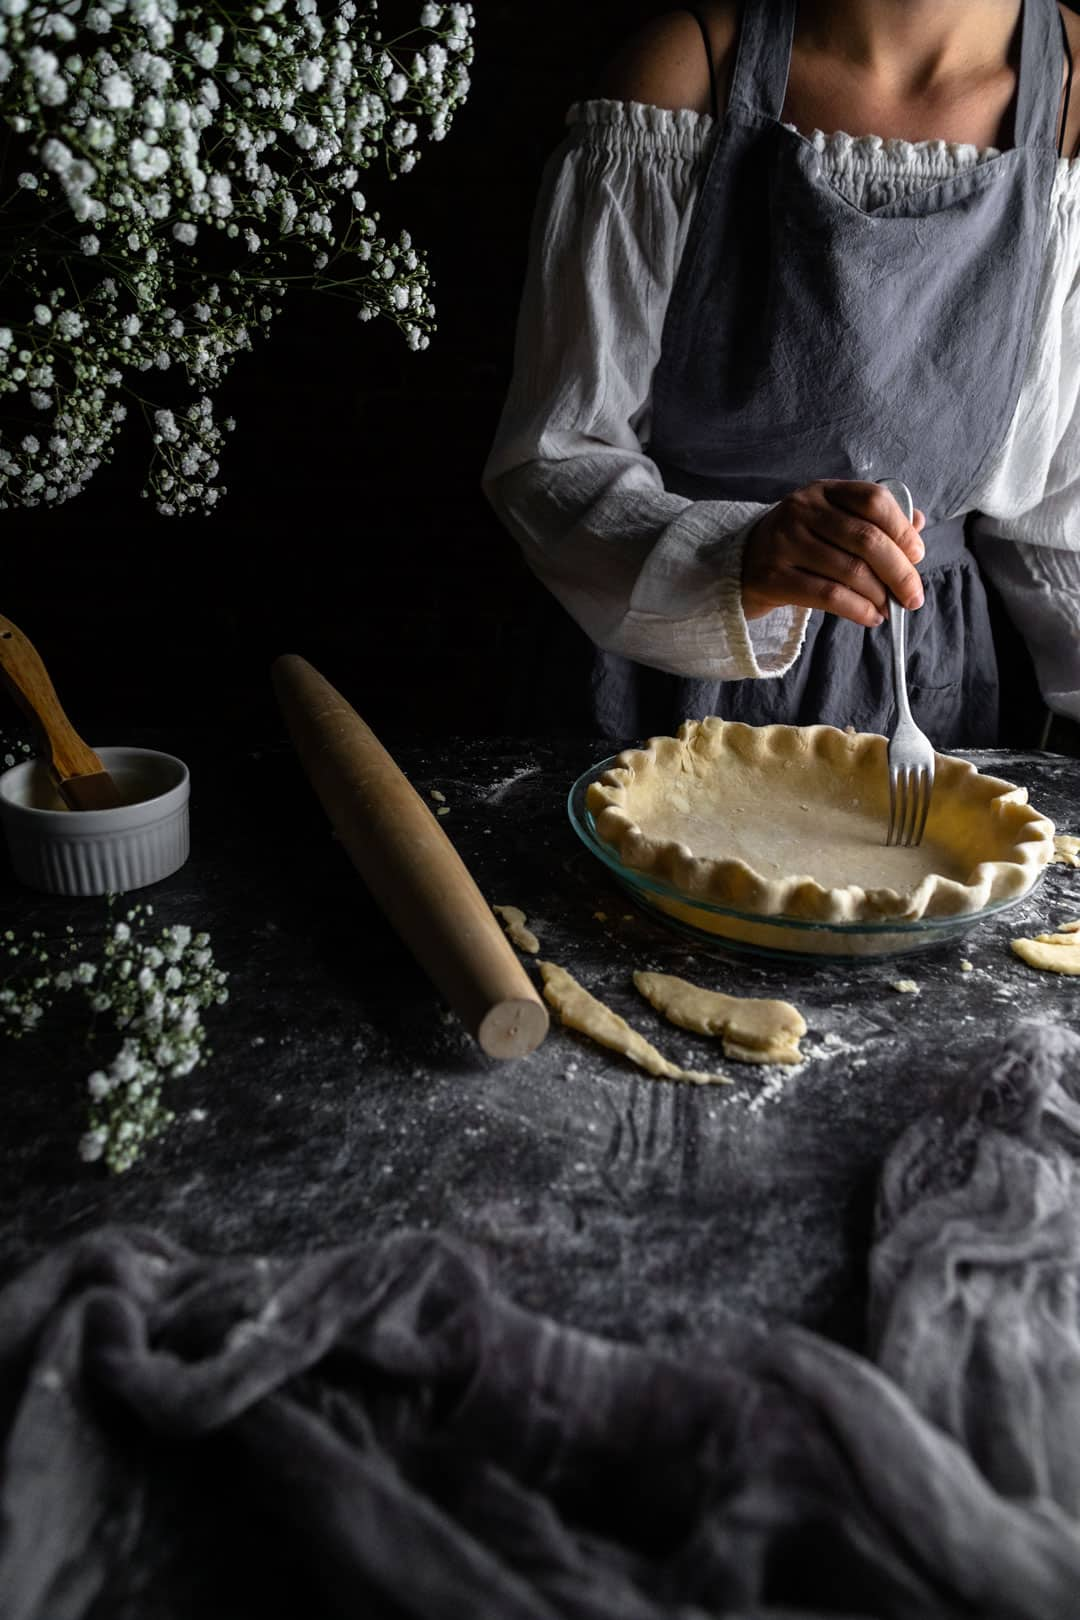 A woman using a fork to poke holes (dock) the bottom of an unbaked crimped pie crust next to a rolling pin and vase of tiny white flowers